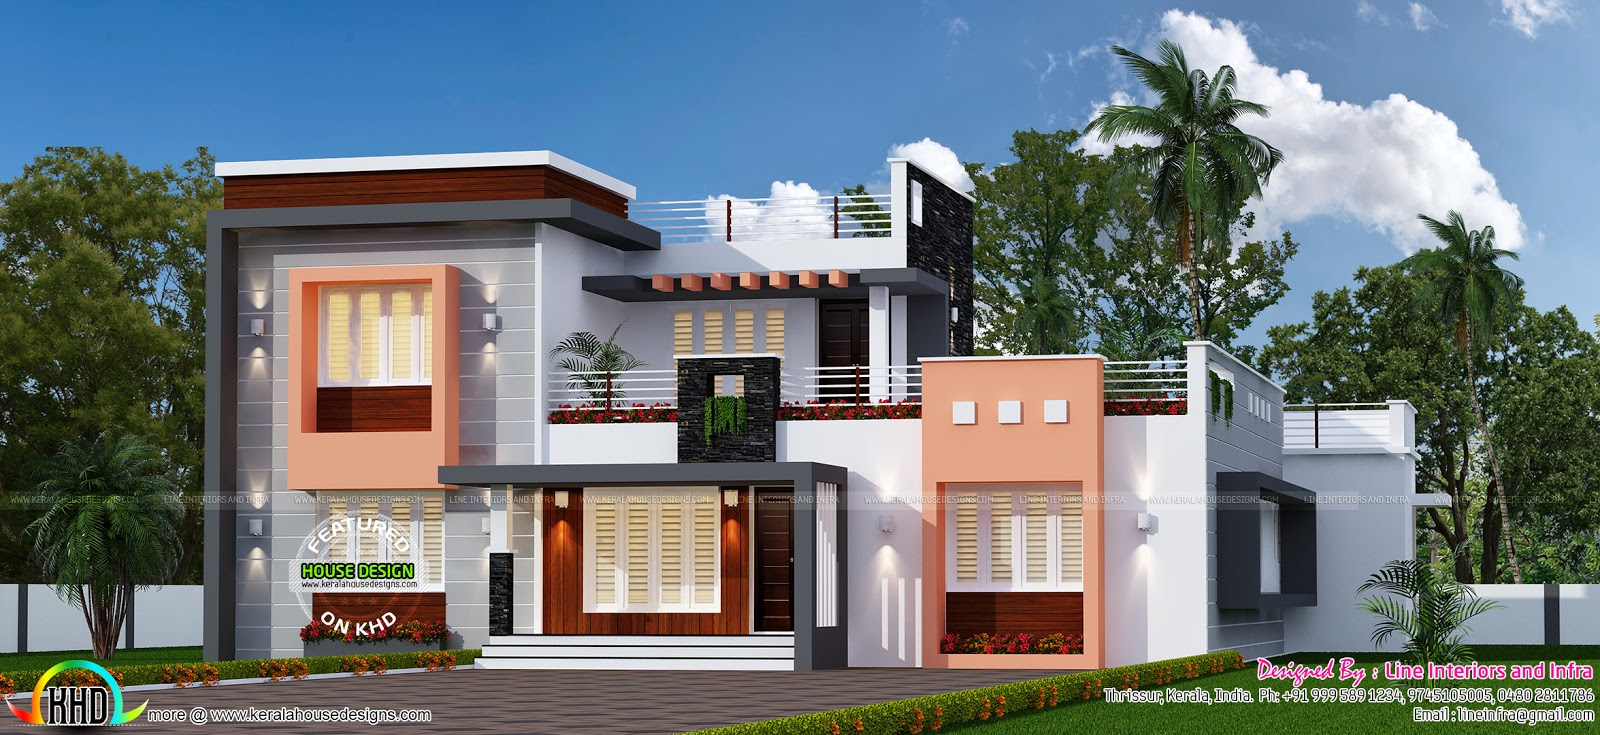 4 bhk 2150 sq ft modern house kerala home design and for 4 bhk home design